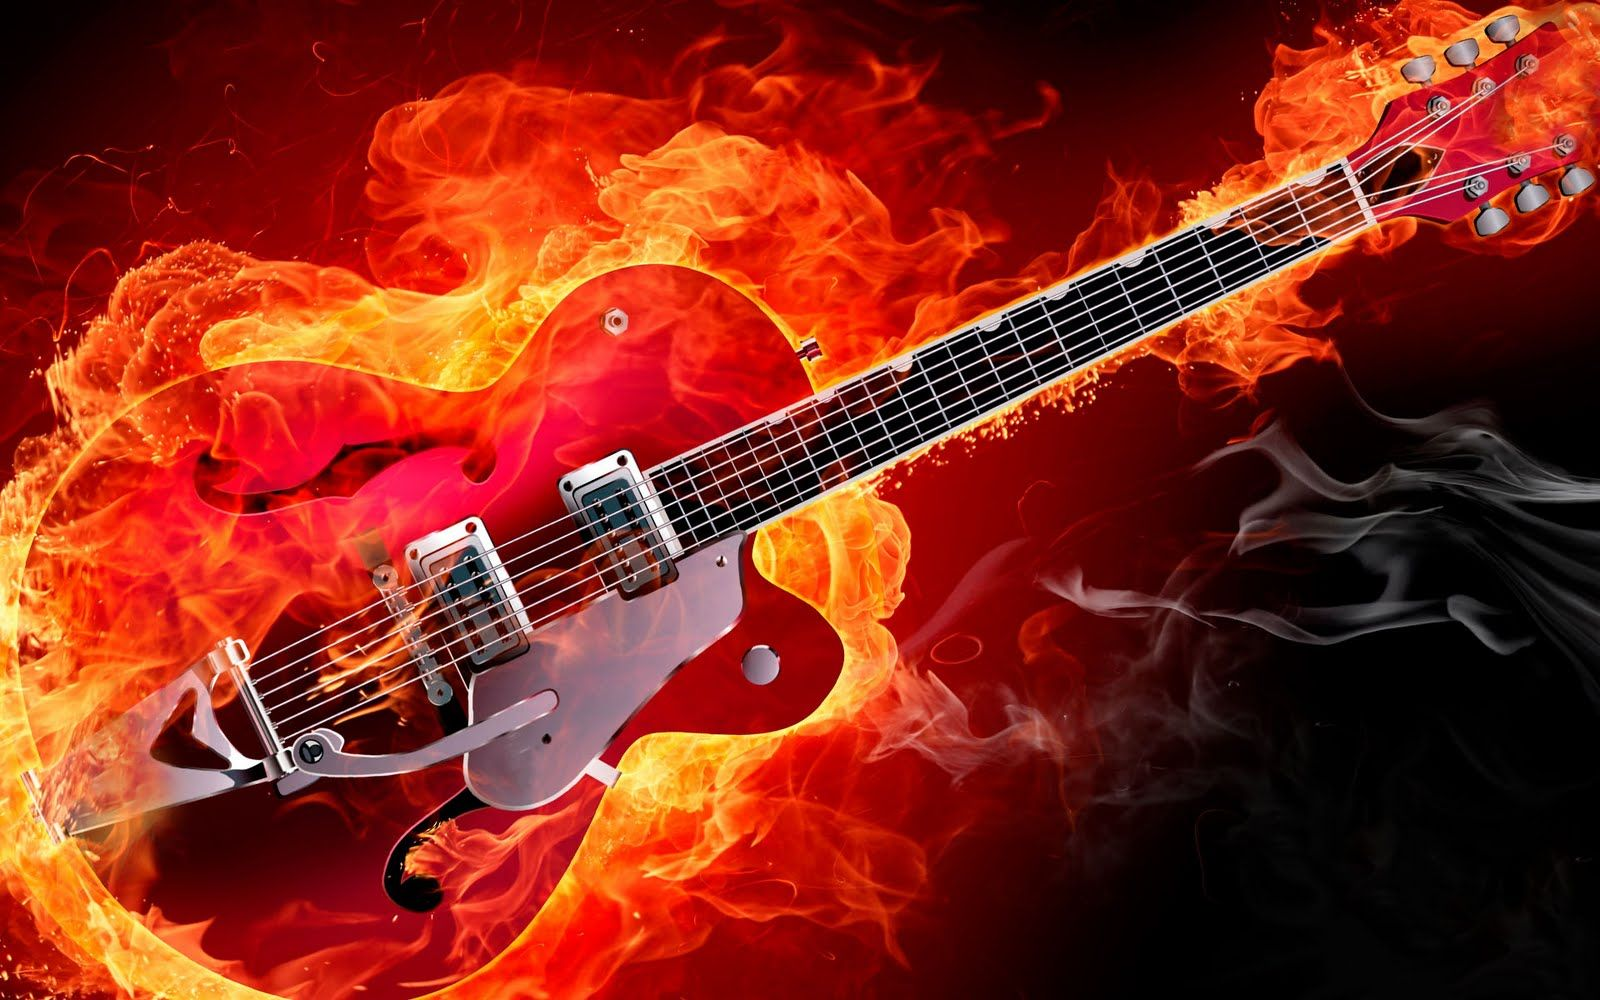 Electric Rockabilly Guitar On Fire Red Smoke Flames HD Music Desktop Wallpaper 1920x1200 Great Sound GreatGuitarSound Wallpapers